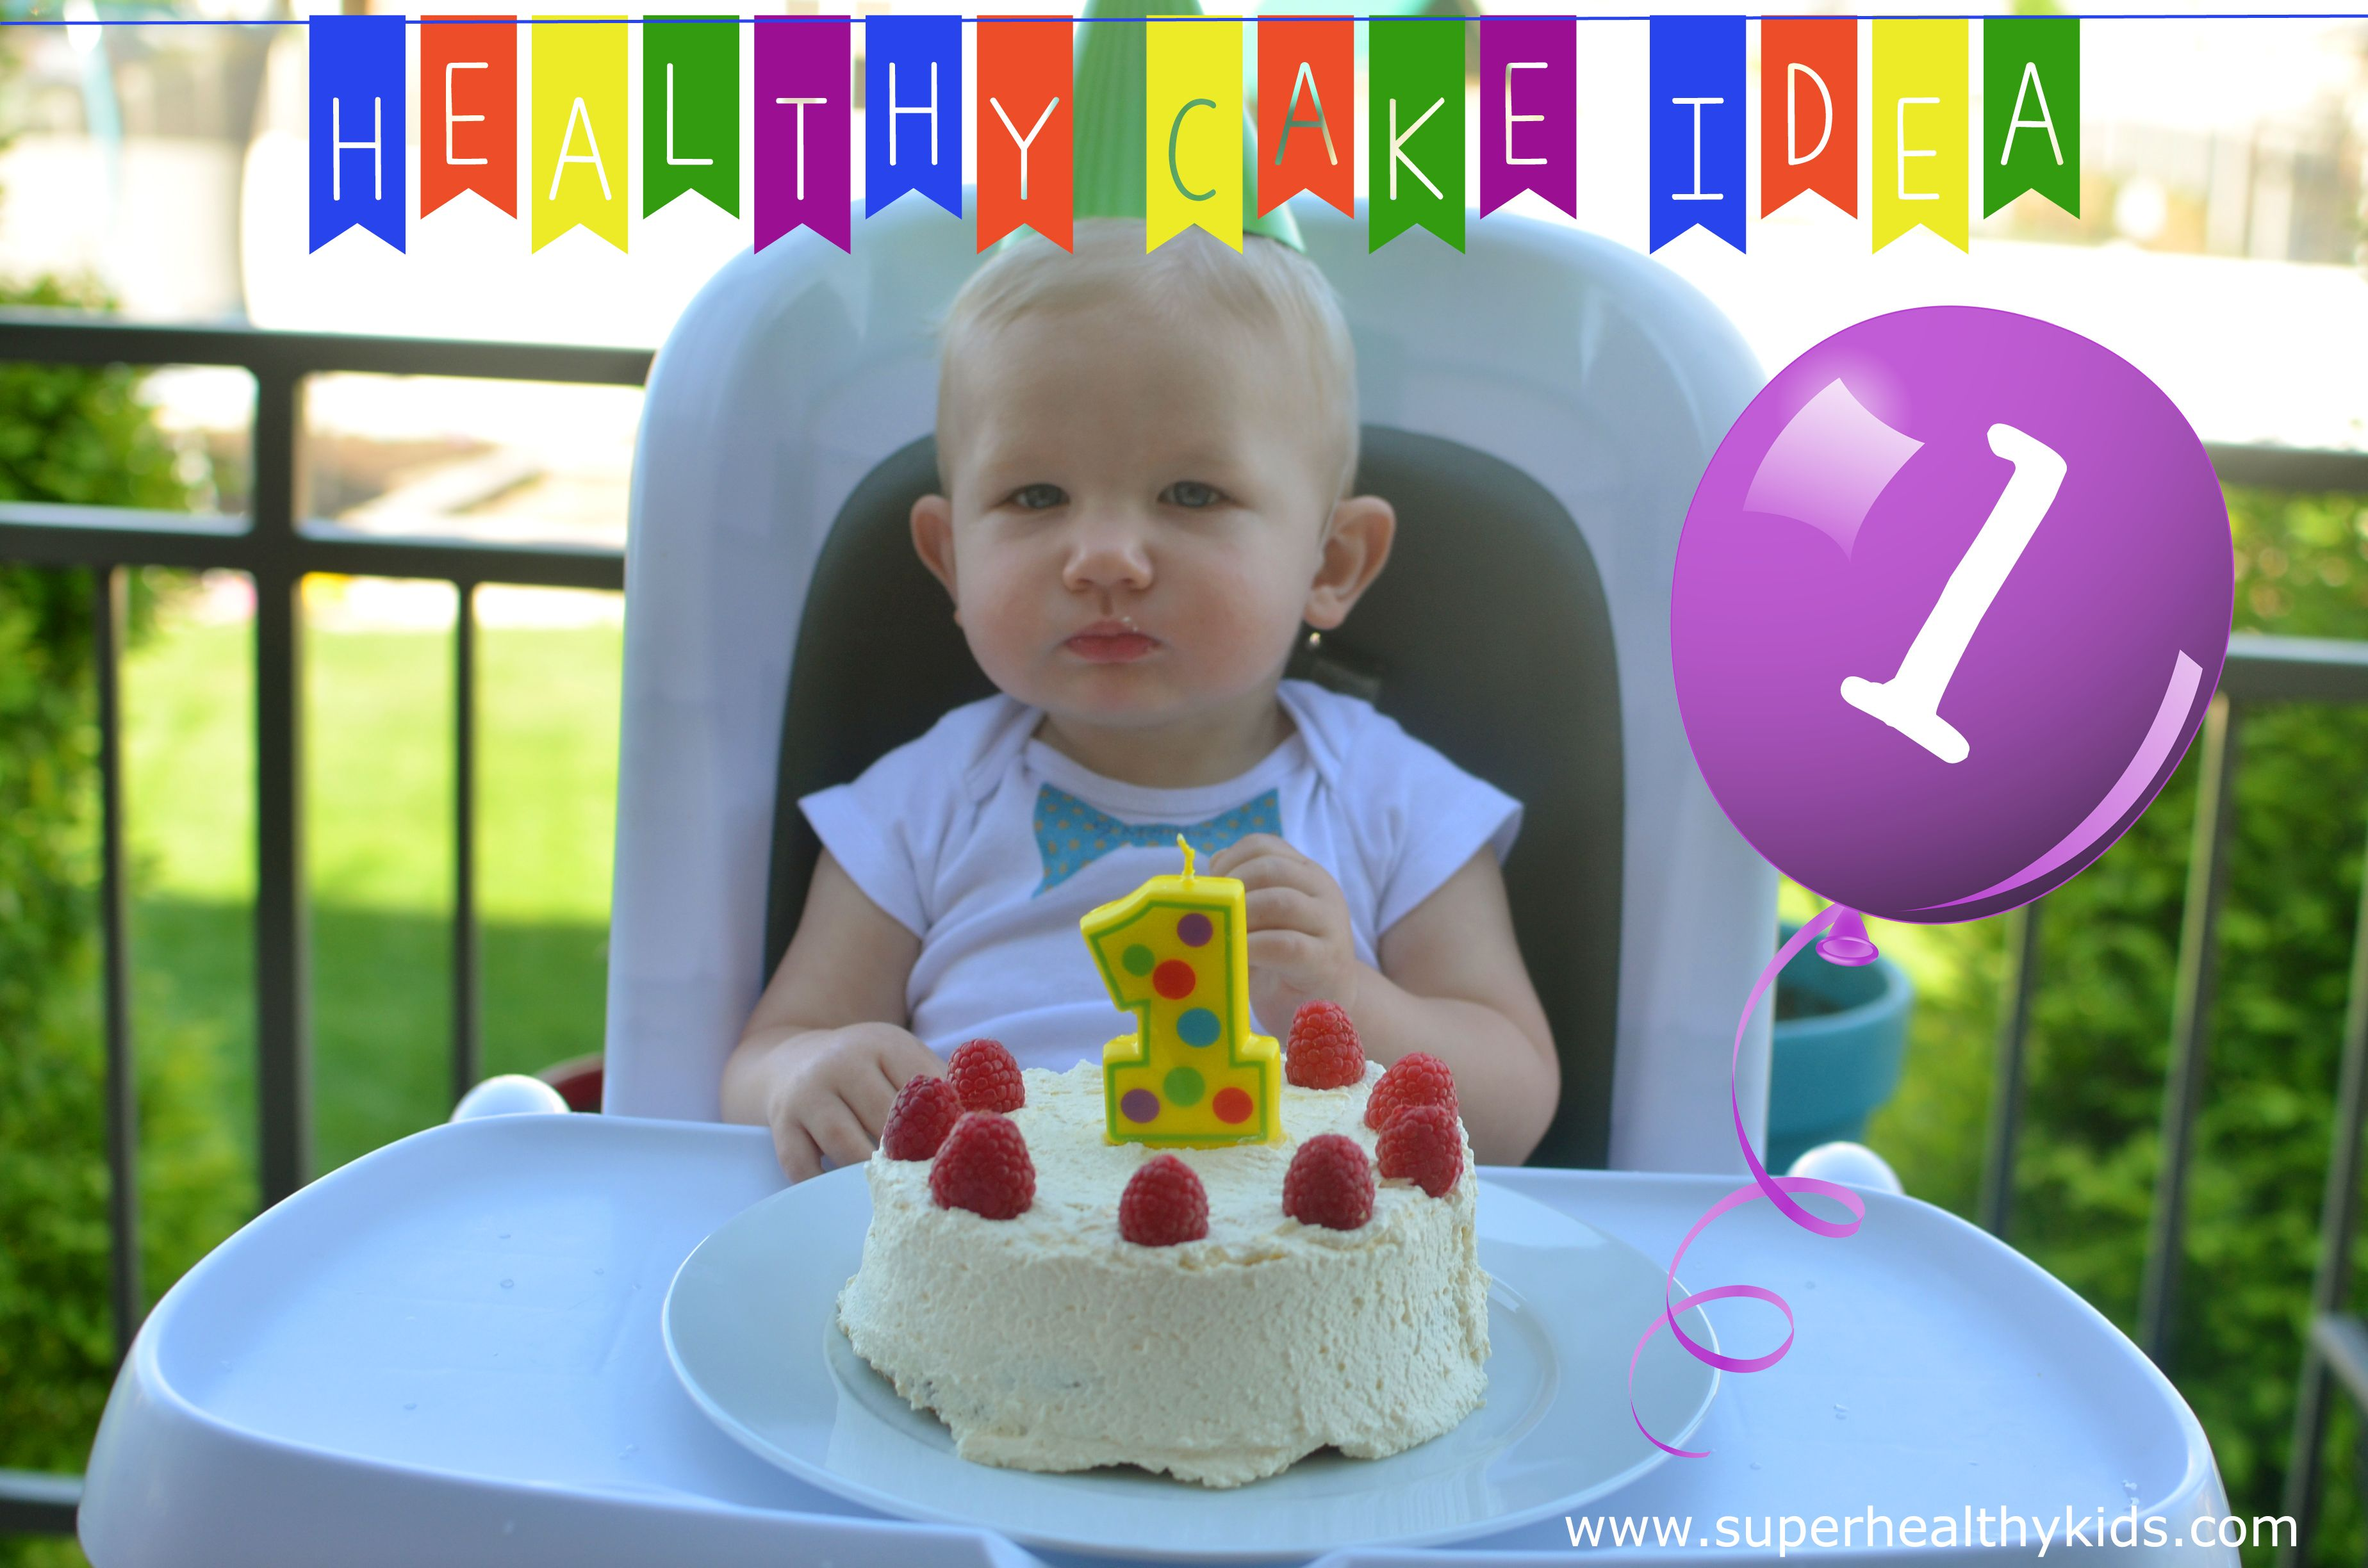 Babies first birthday cake idea healthyparties from Super Healthy